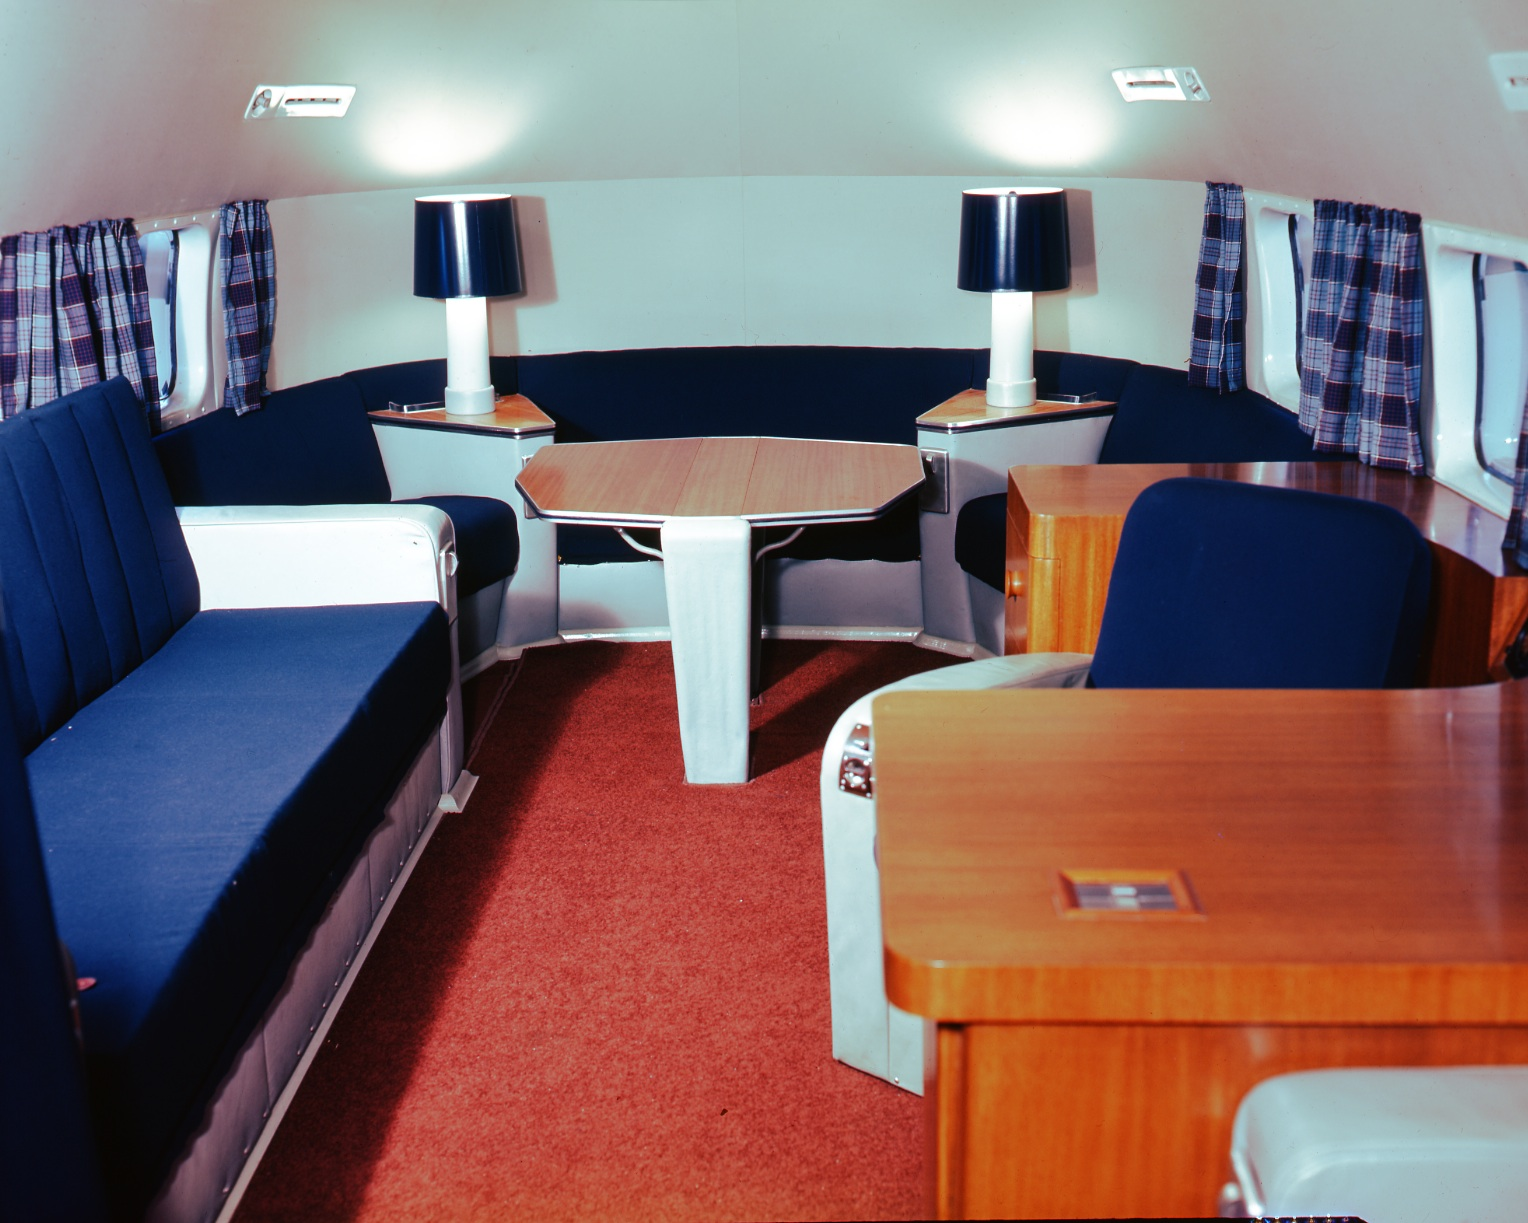 This aft cabin of a North Star conversion done by Canadair and delivered to Ottawa as the Royal Canadian Air Force's premier VIP aircraft is decorated with typical 1950s-style furnishings and Royal Canadian Air Force tartan curtains. PHOTO: Canadair